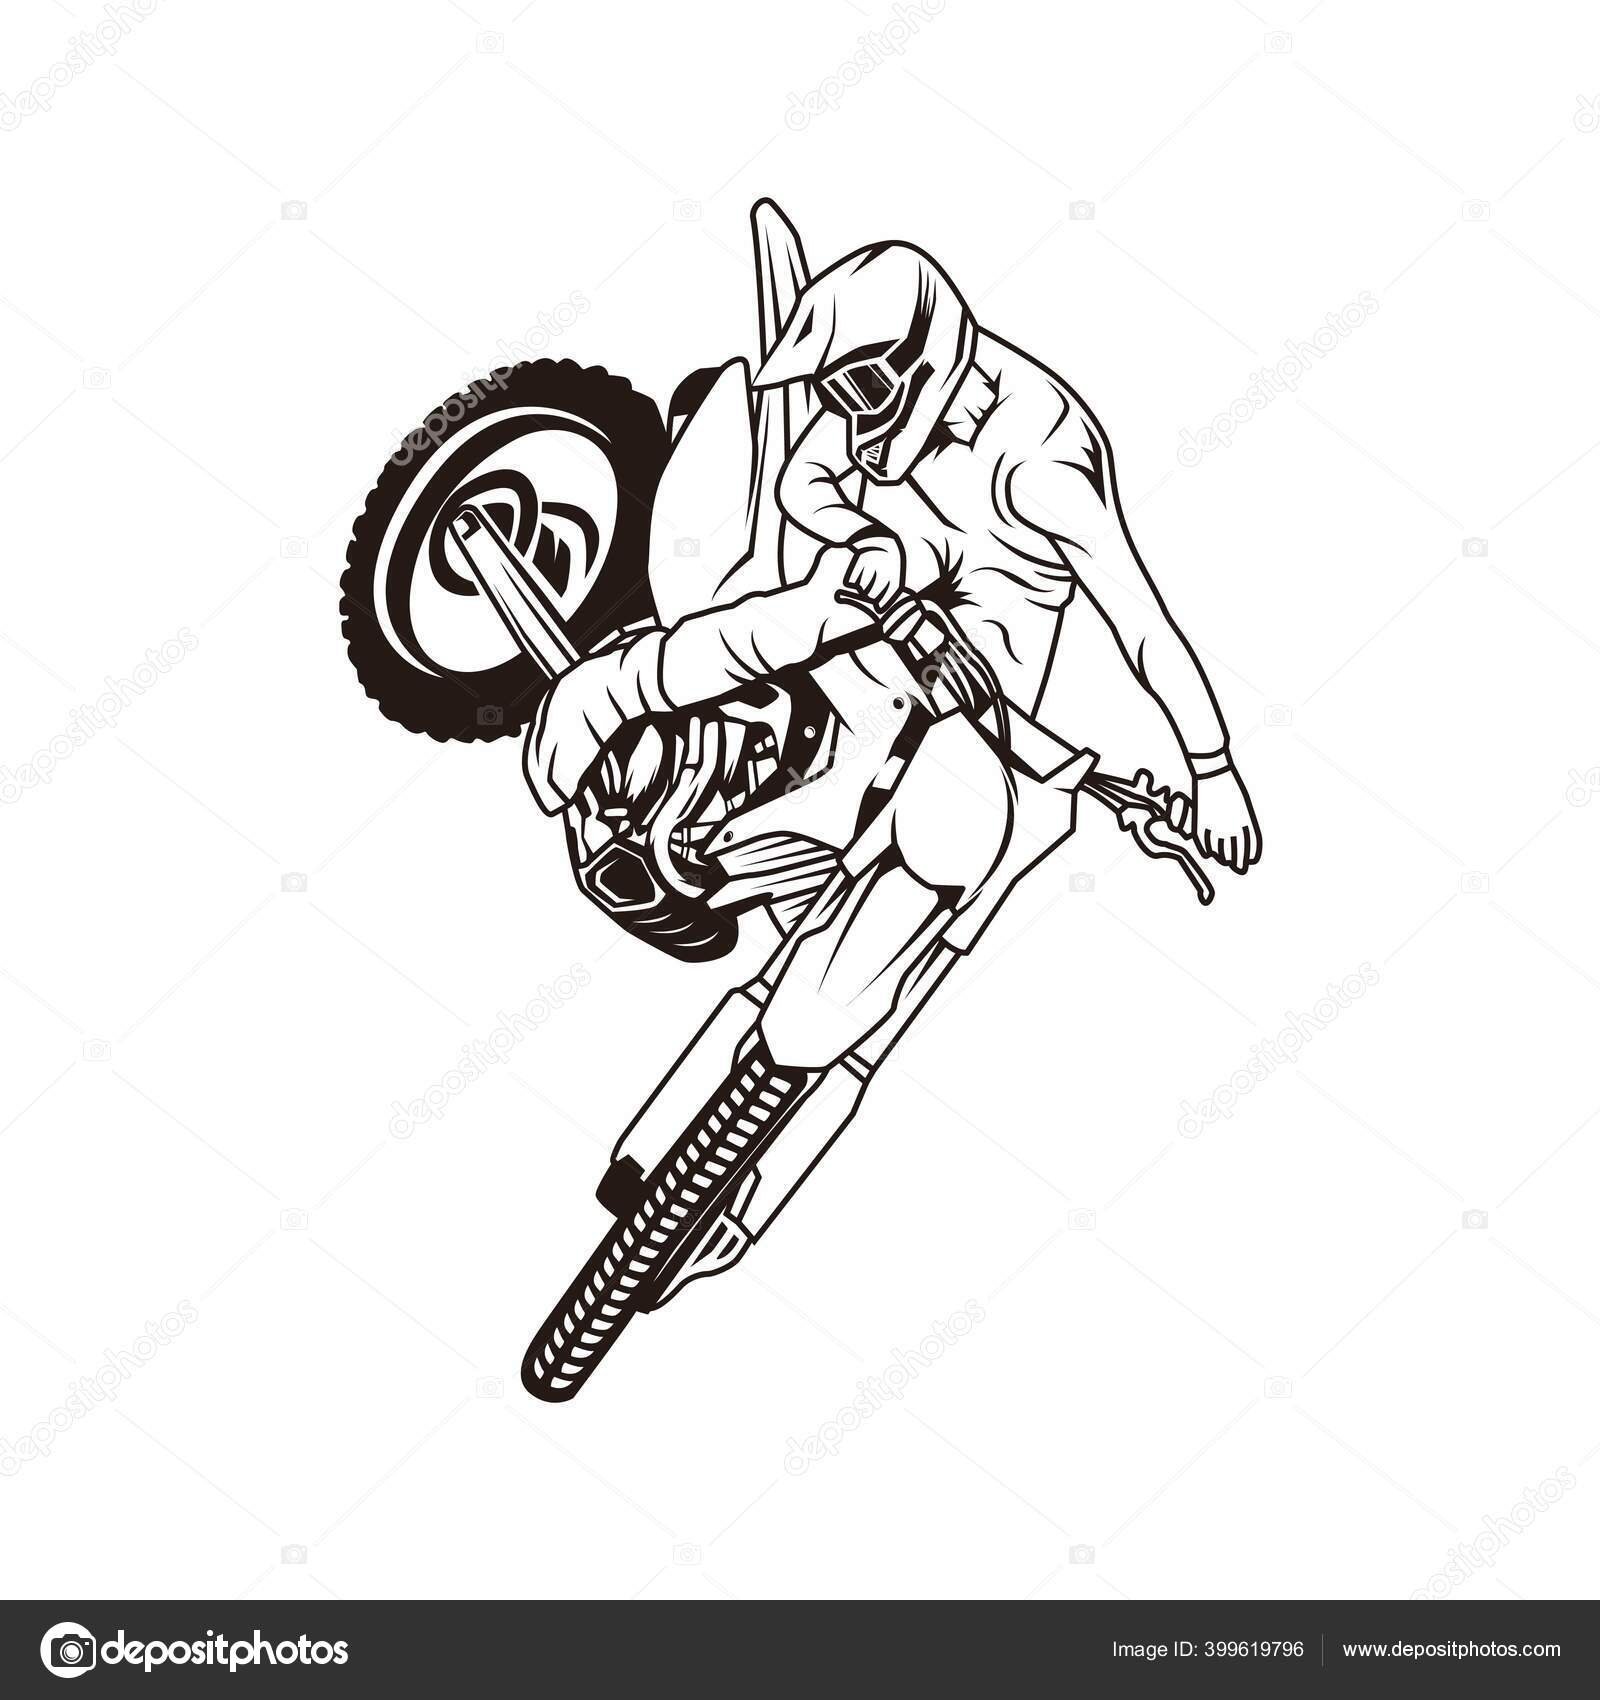 ᐈ Freestyle Motocross Stock Vectors Royalty Free Motocross Freestyle Illustrations Download On Depositphotos